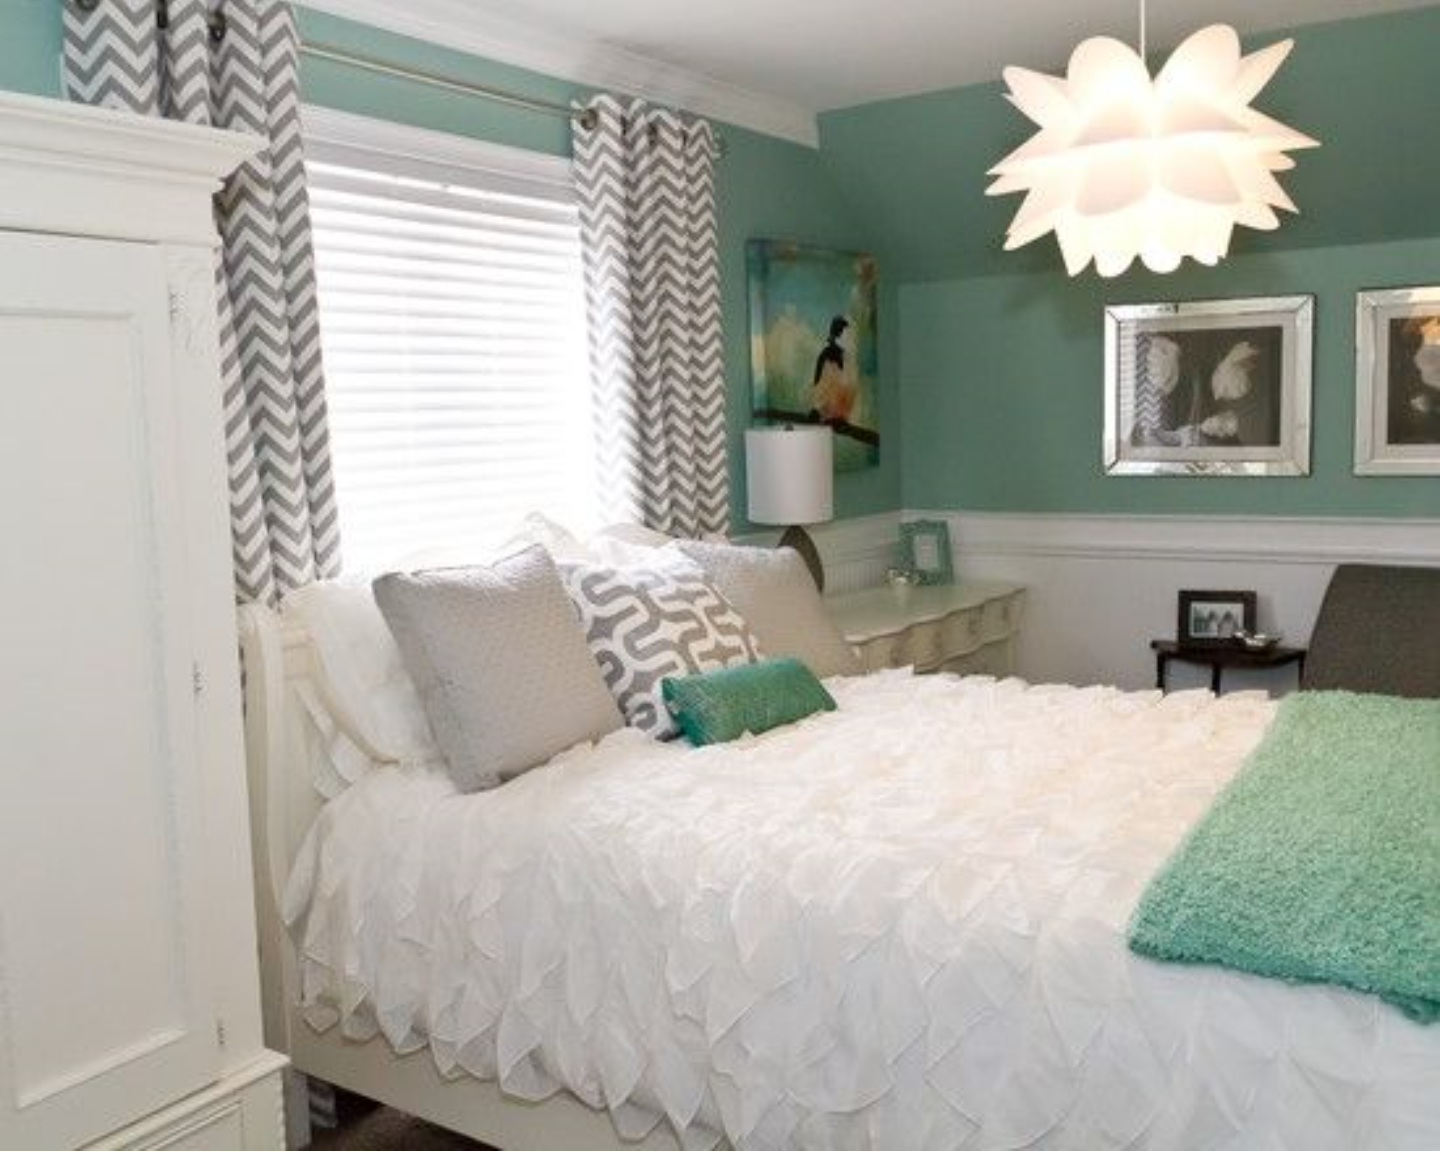 Very Pretty Modern Feminine Bedroom Love The Wall Color And Gray White Chevron Curtains Furniture Ruffled Comforter Awesome Light